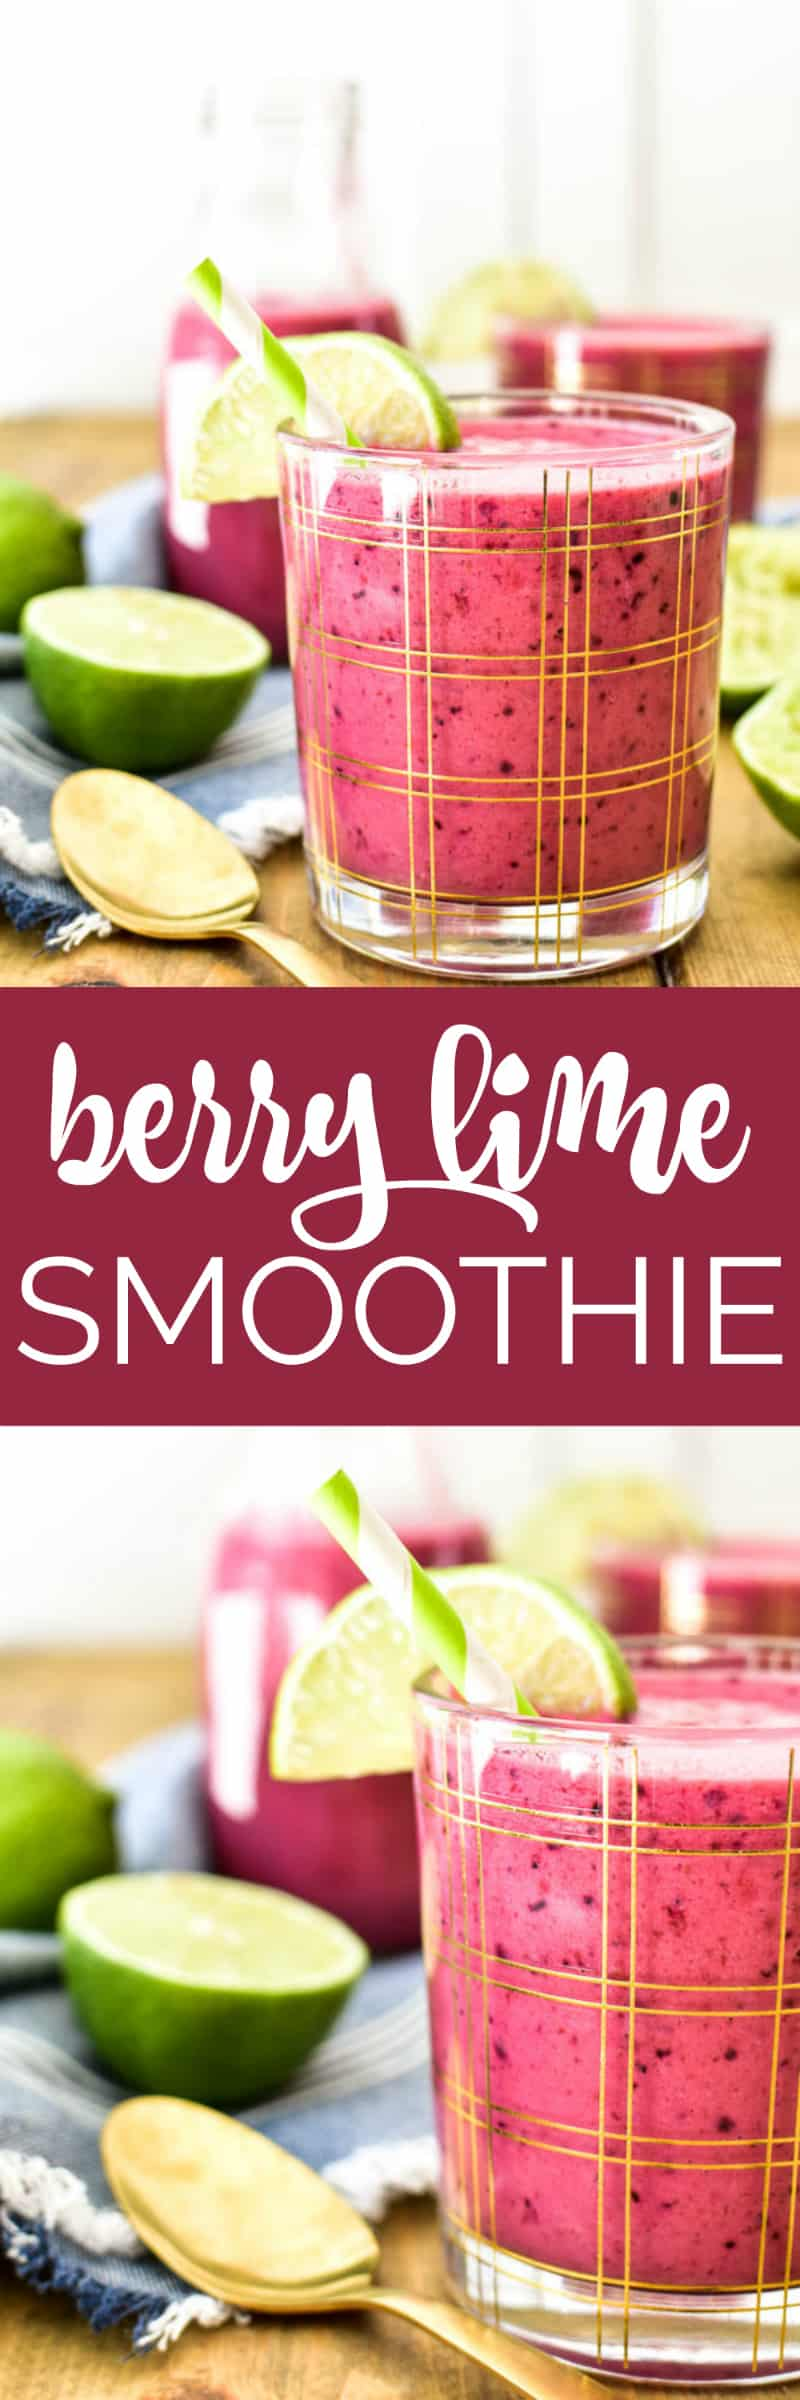 Collage image of Berry Lime Smoothie in a glass